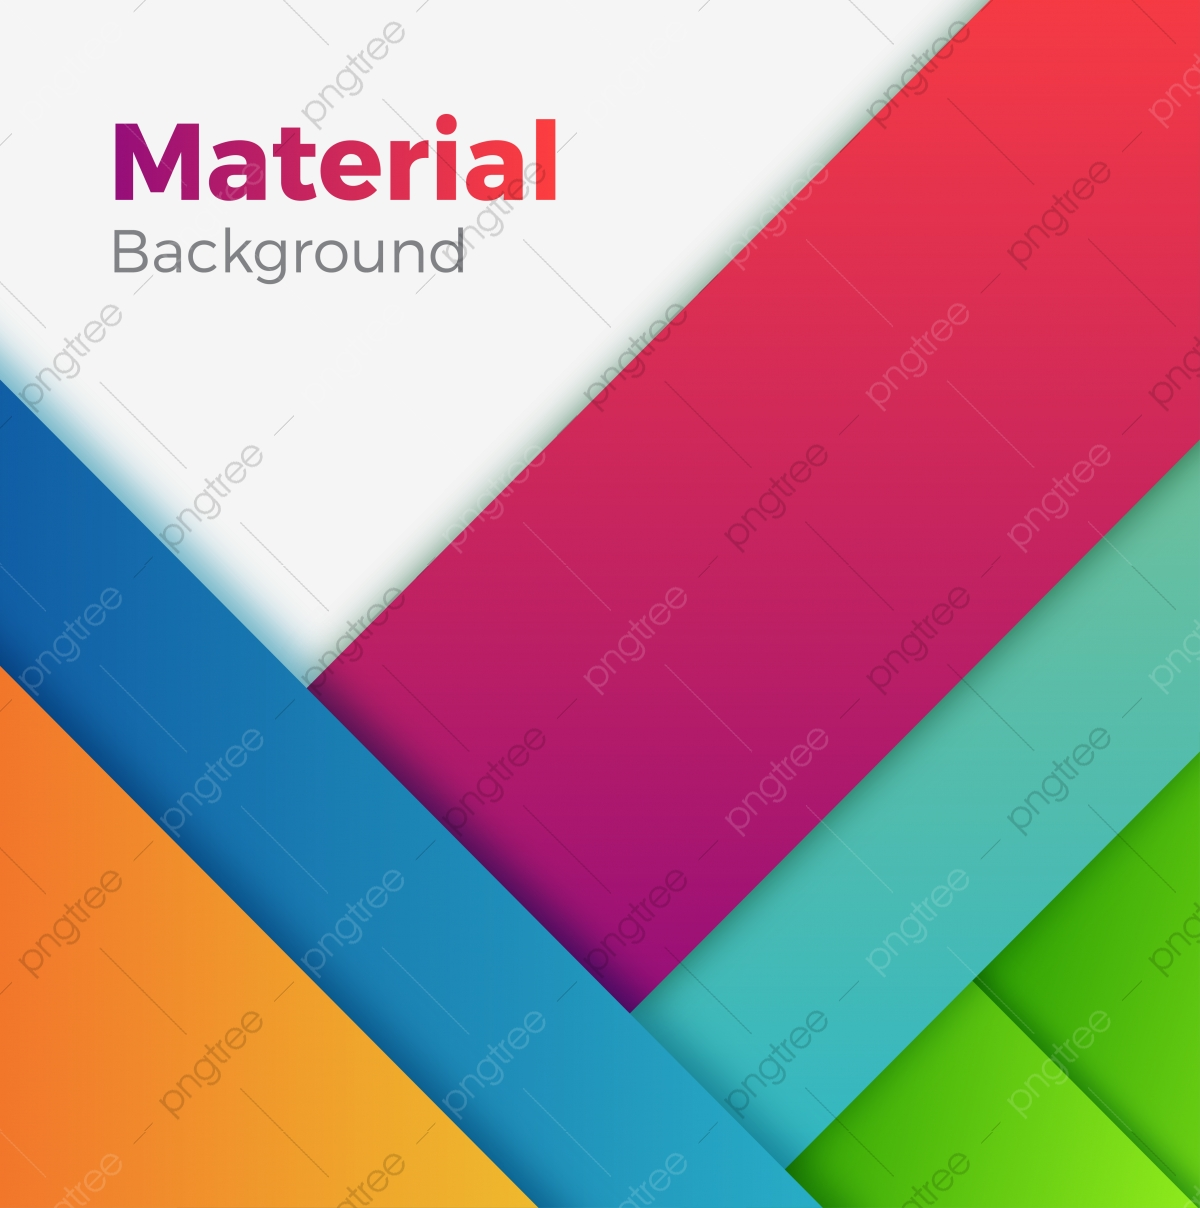 Colorful Material Design Background With Shiny Shadow Vector Background Abstract Modern Png And Vector With Transparent Background For Free Download,Popular Designer Bracelets